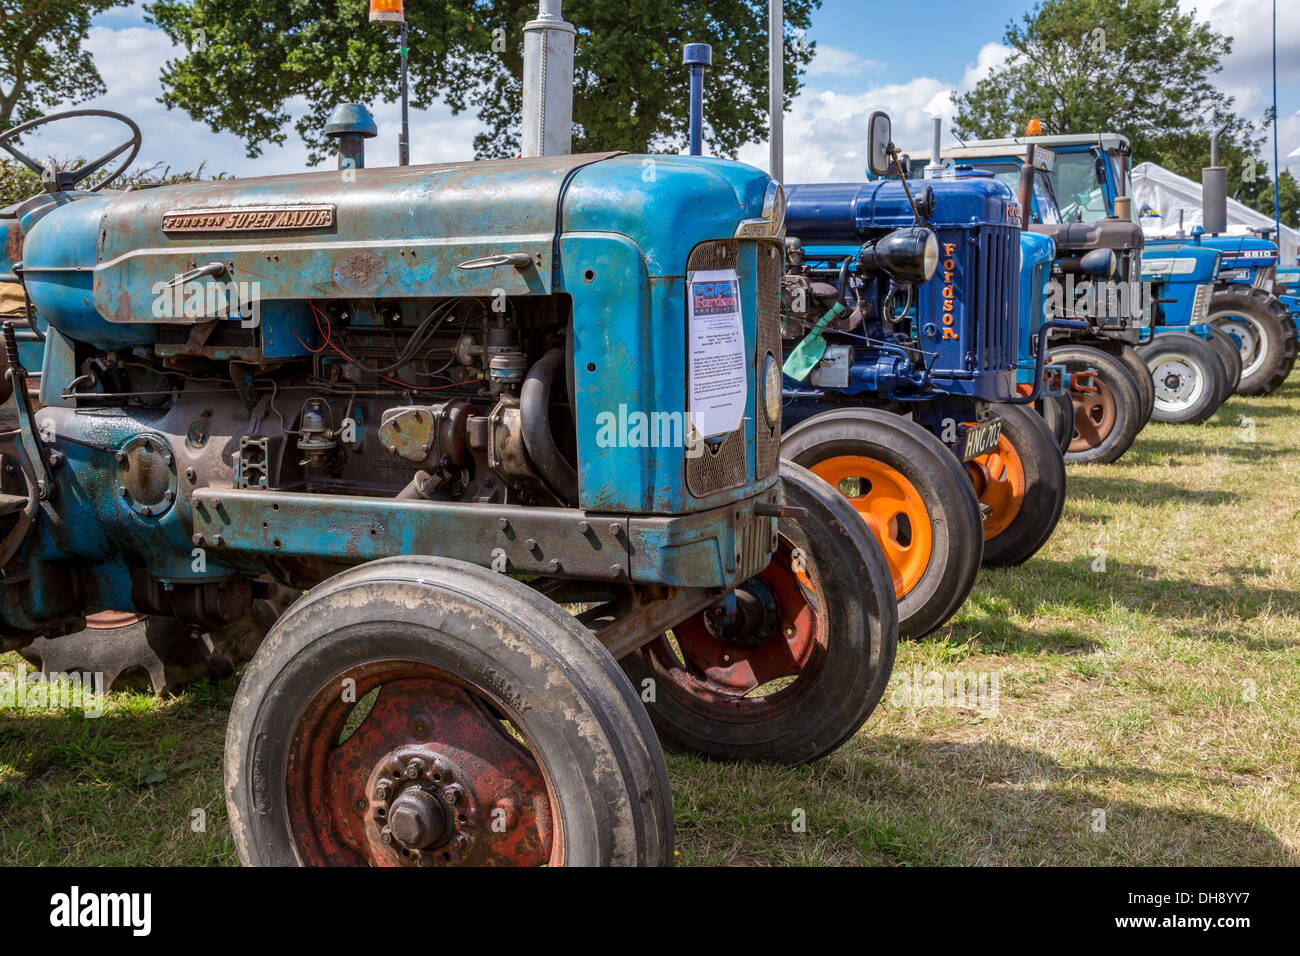 keith catching tractors display and s parked falls hanley ford influence the an show make when magazine tug at highboy minn pioneer eye is collector tractor power moto farm ferguson